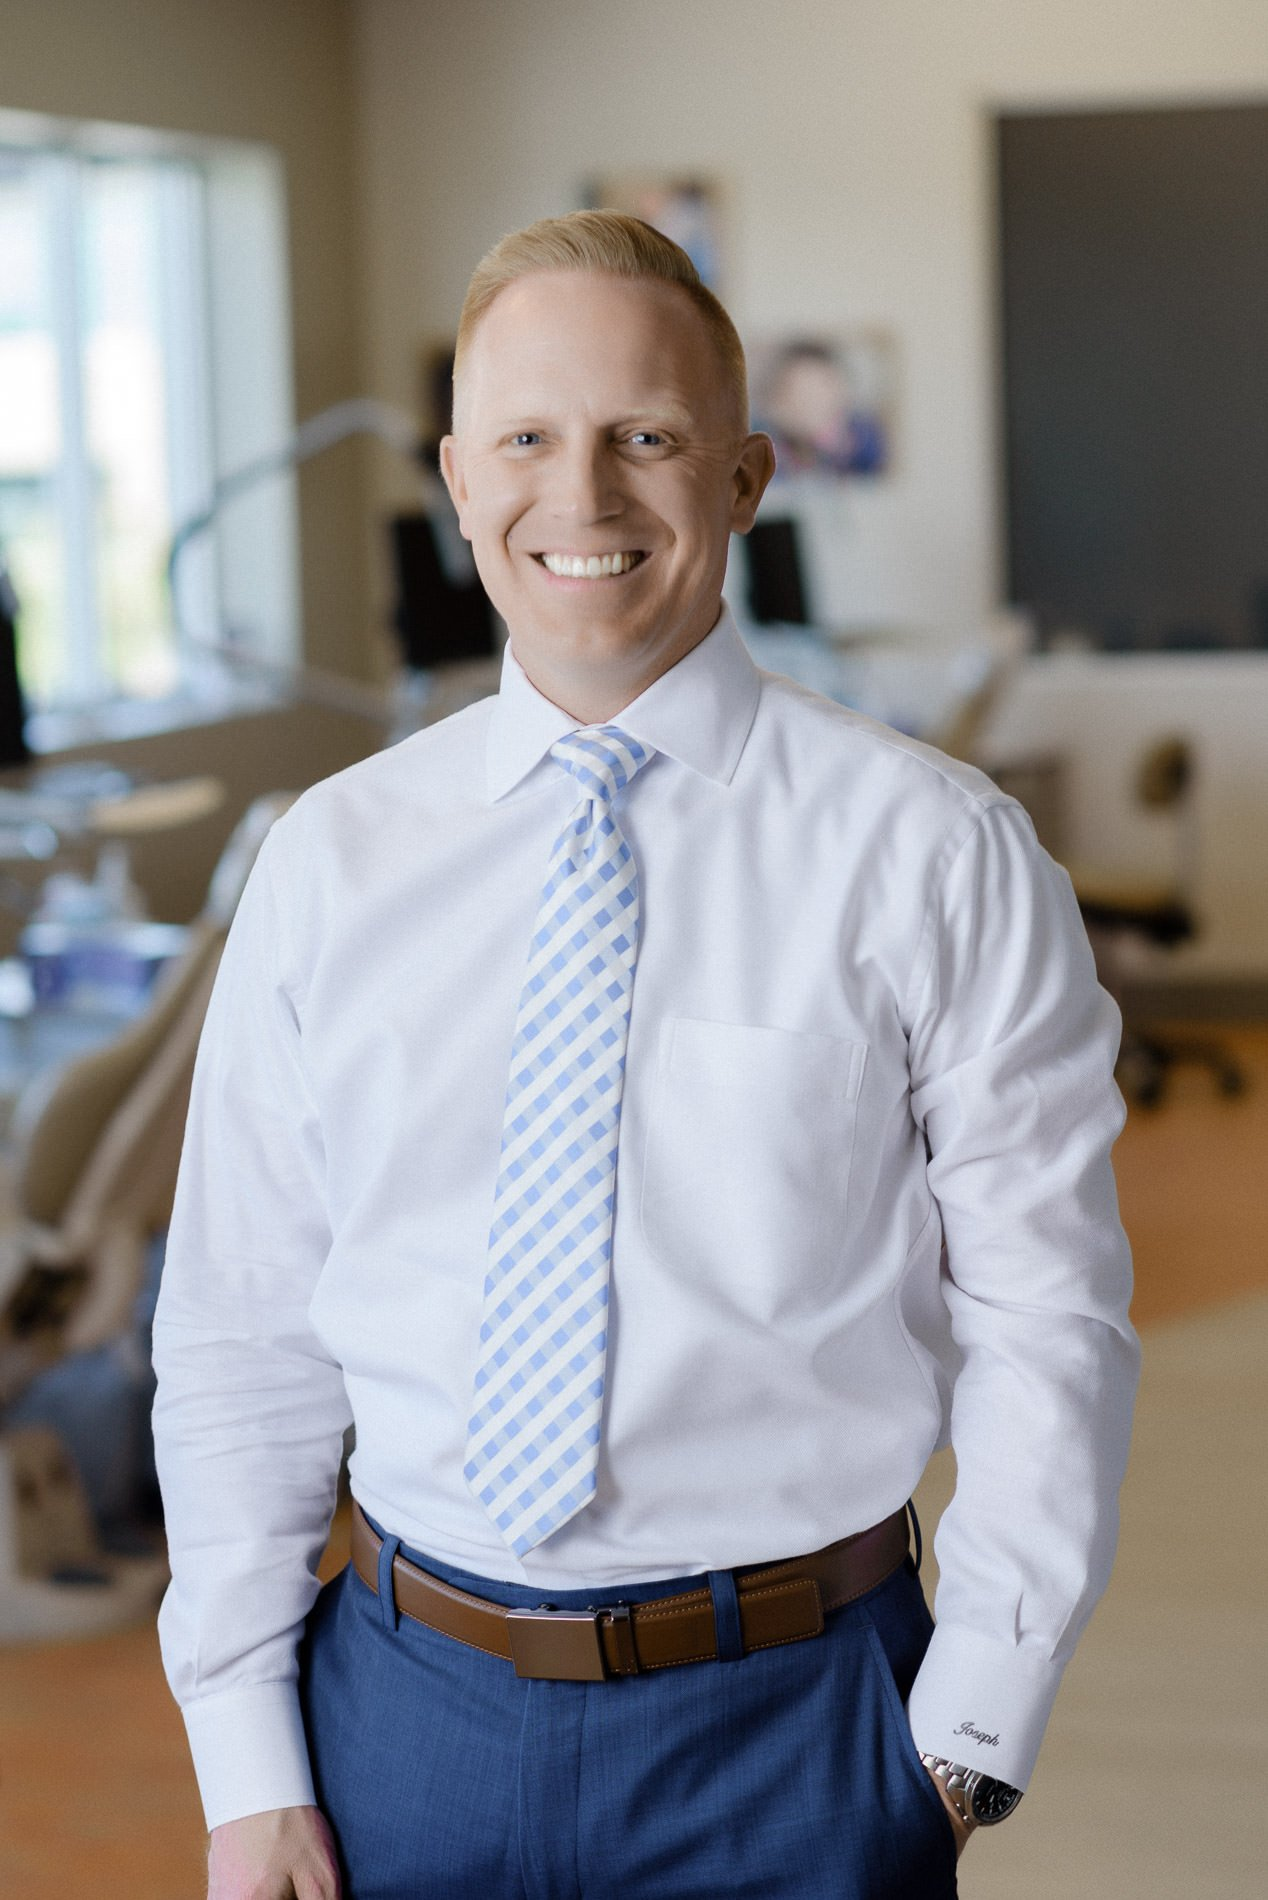 An image of an orthodontist in his office for Bountiful commercial photography.